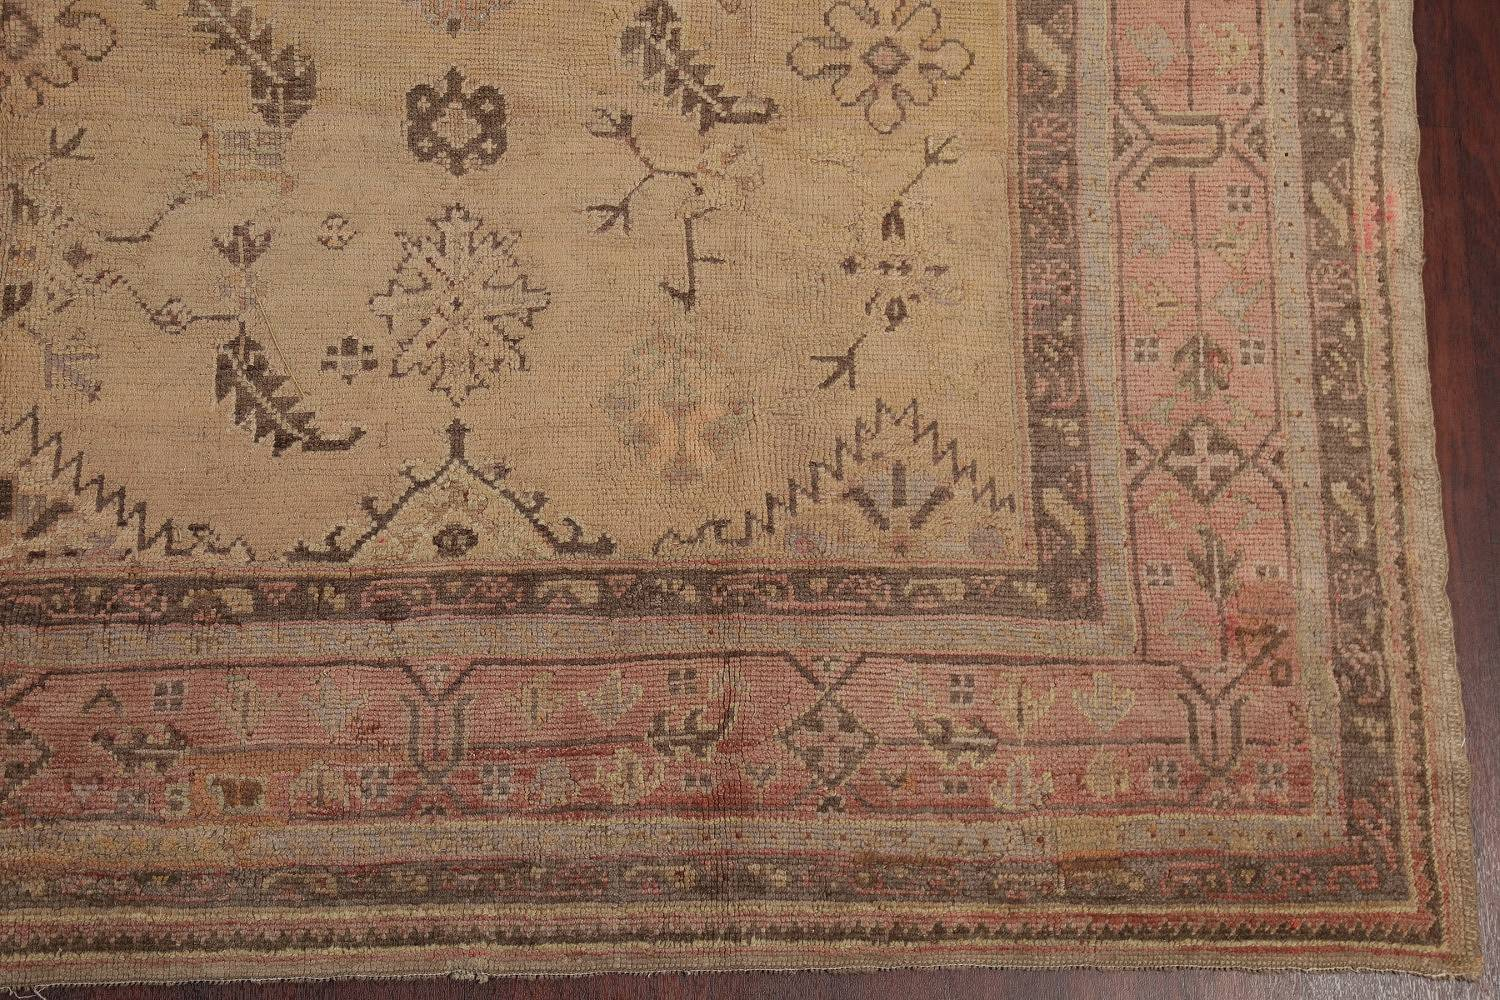 Pre-1900 Antique All-Over Geometric Muted Color Oushak Turkish Area Rug 10x13 image 6